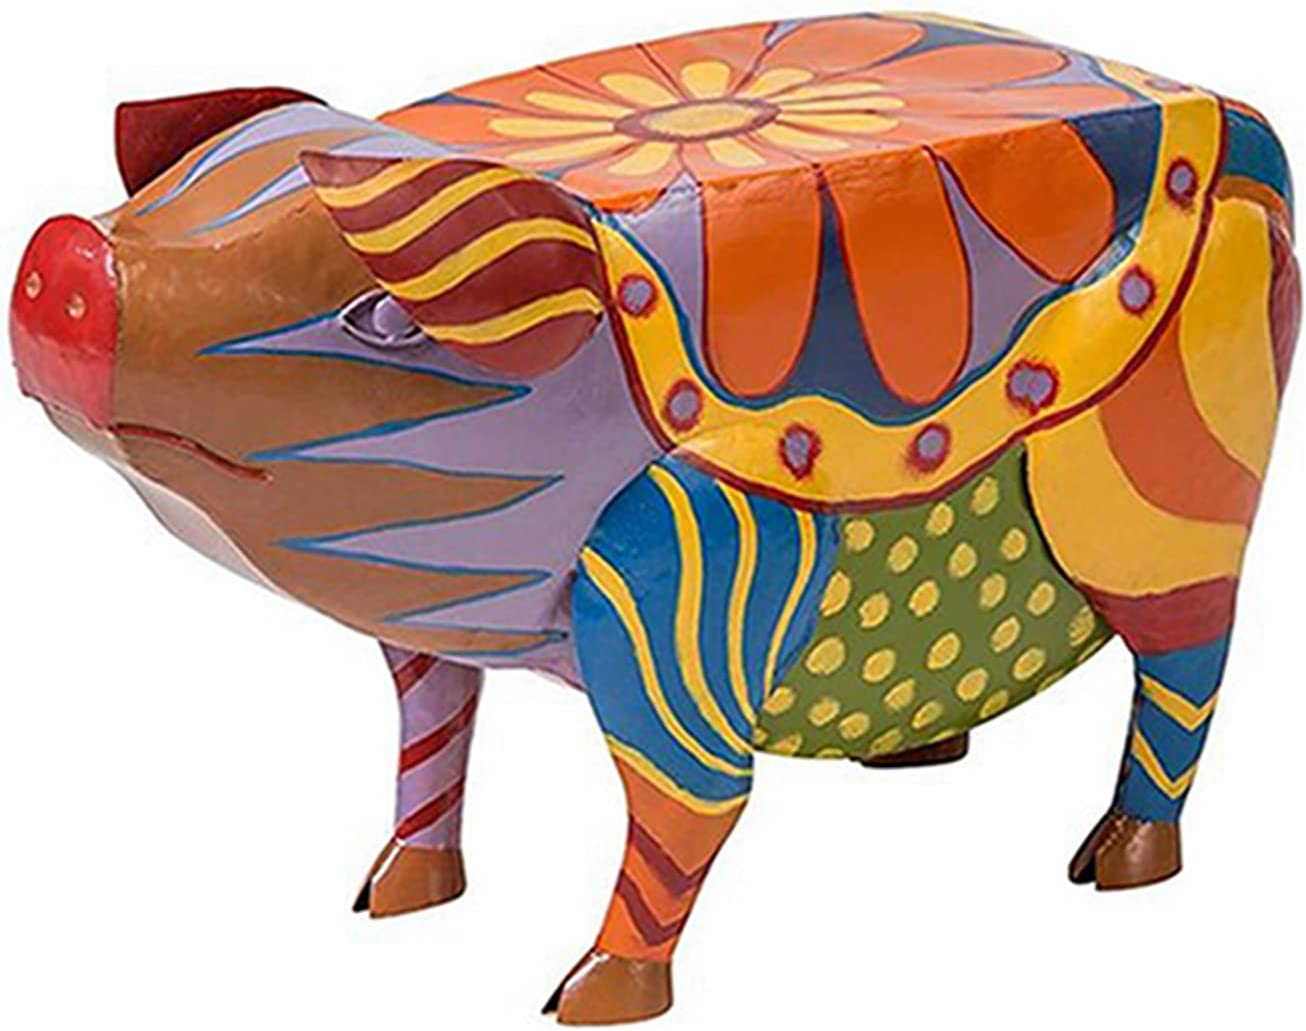 OOYT Colorful Folk Art Same day shipping Pig Side Resin Statues Miami Mall Cute Table Animal